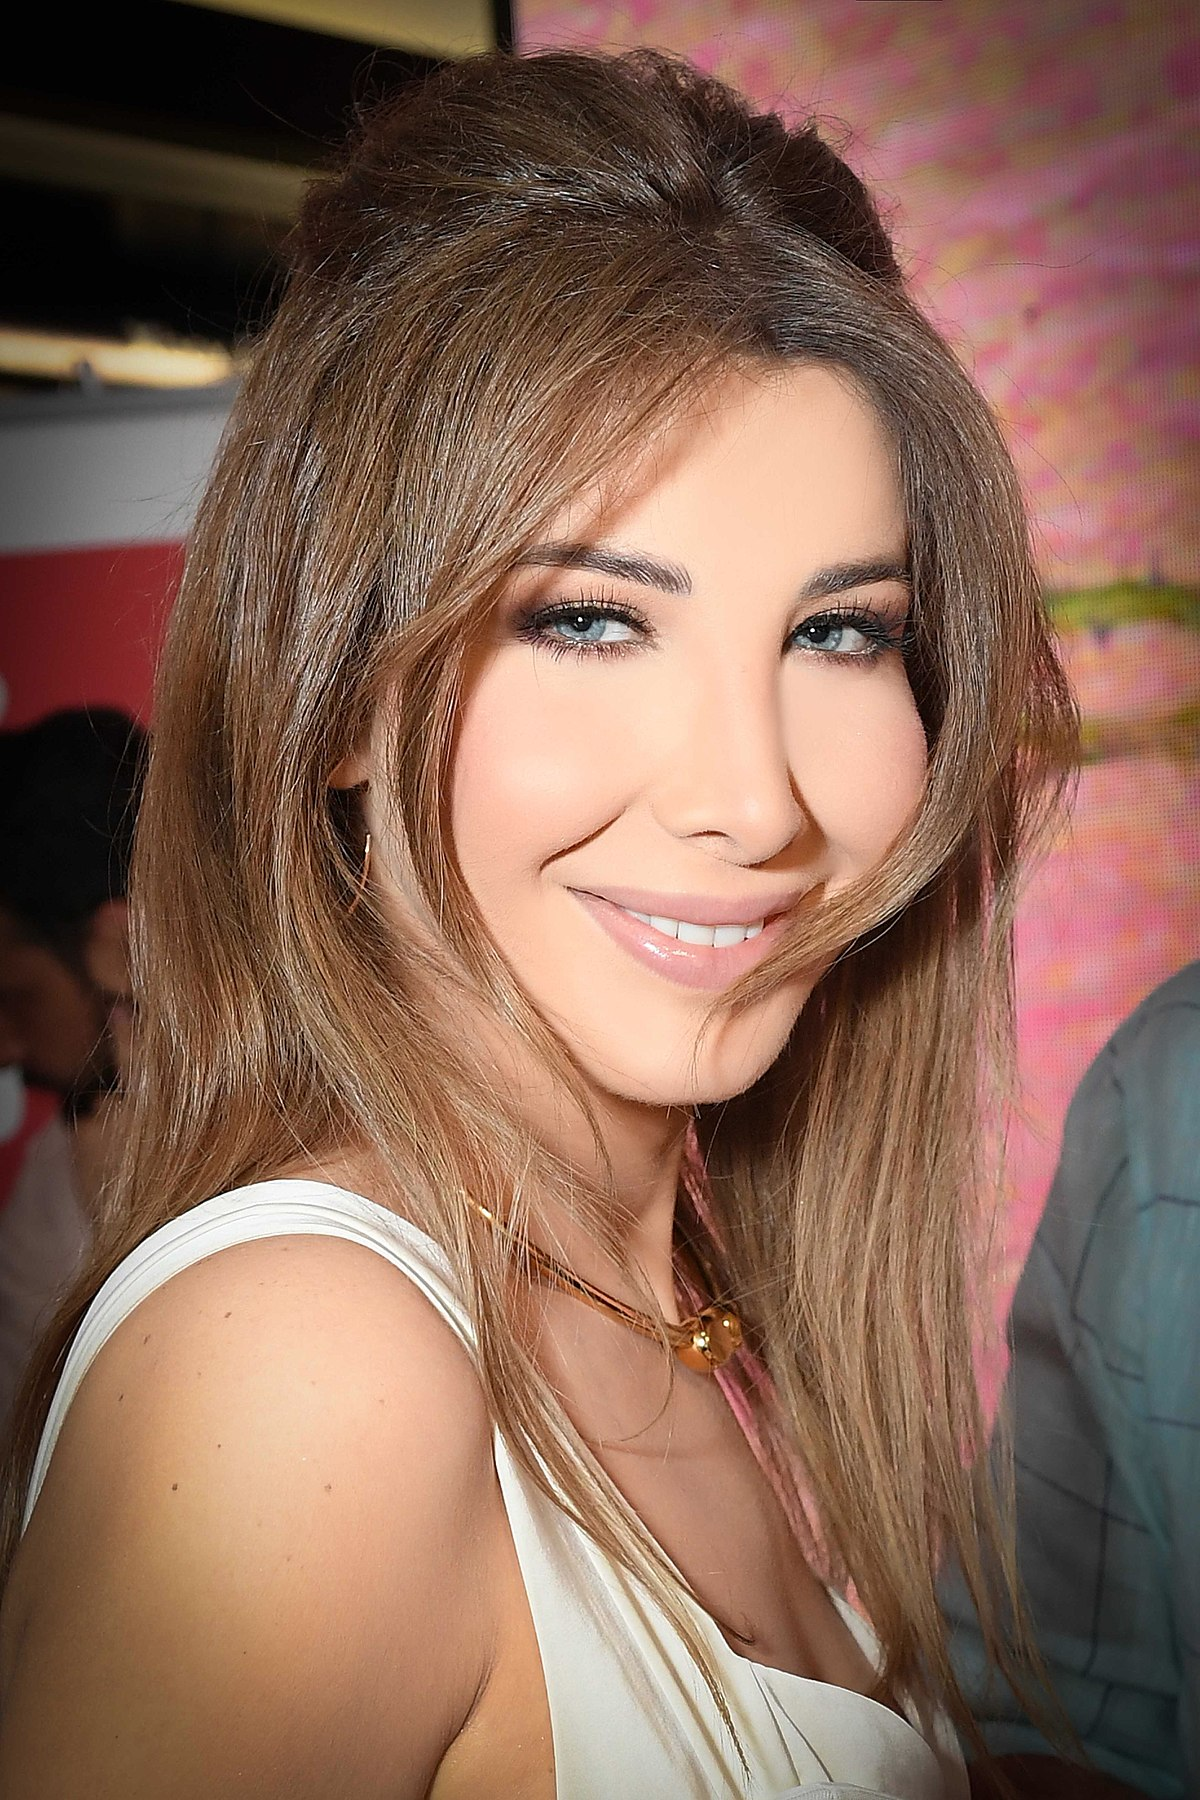 b4f2ca86c Nancy Ajram - Wikipedia